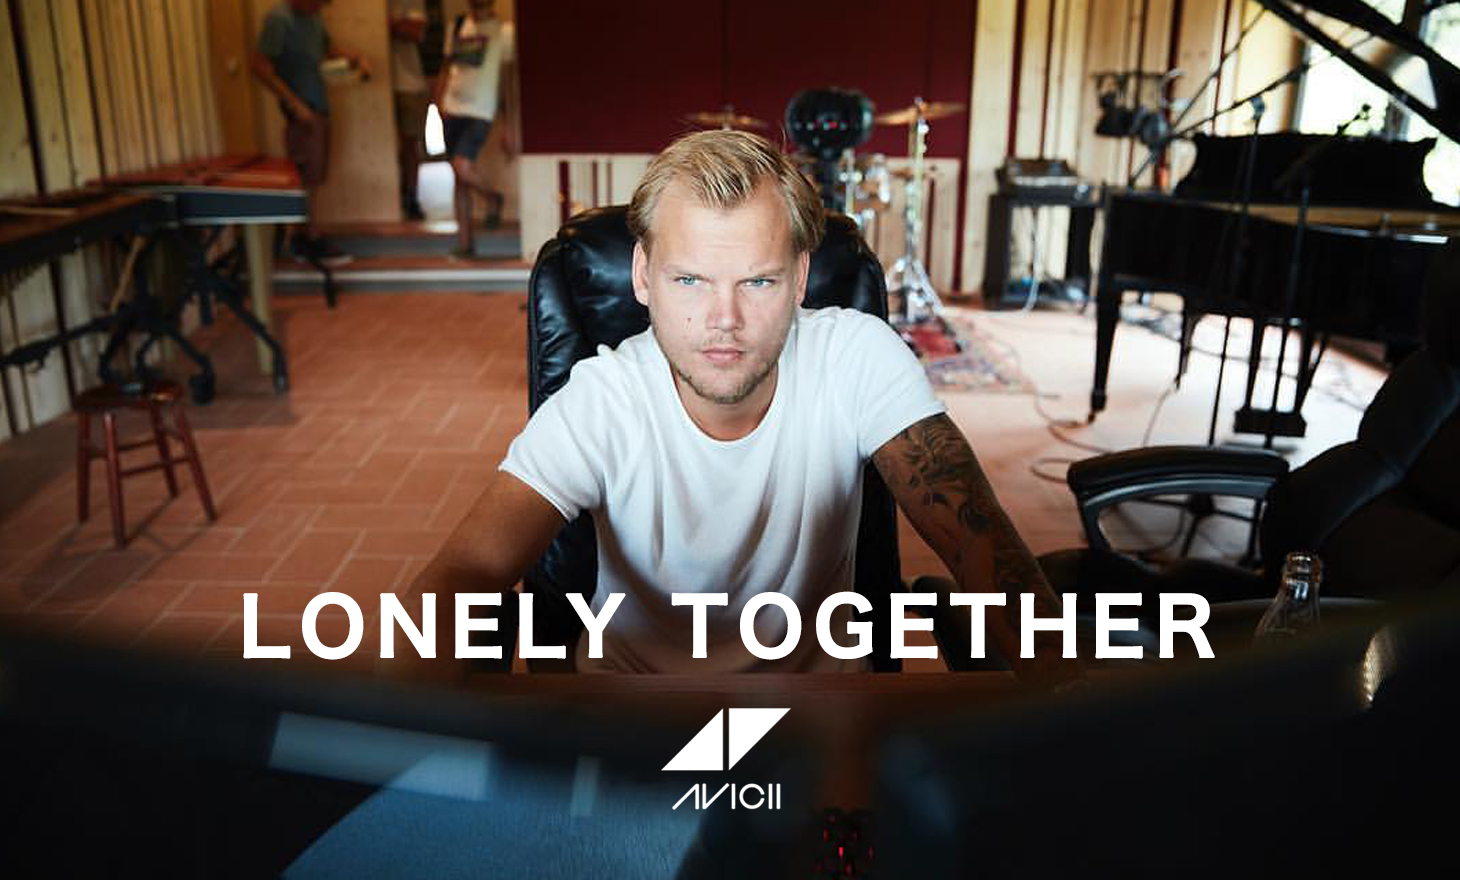 Avicii : Lonely Together